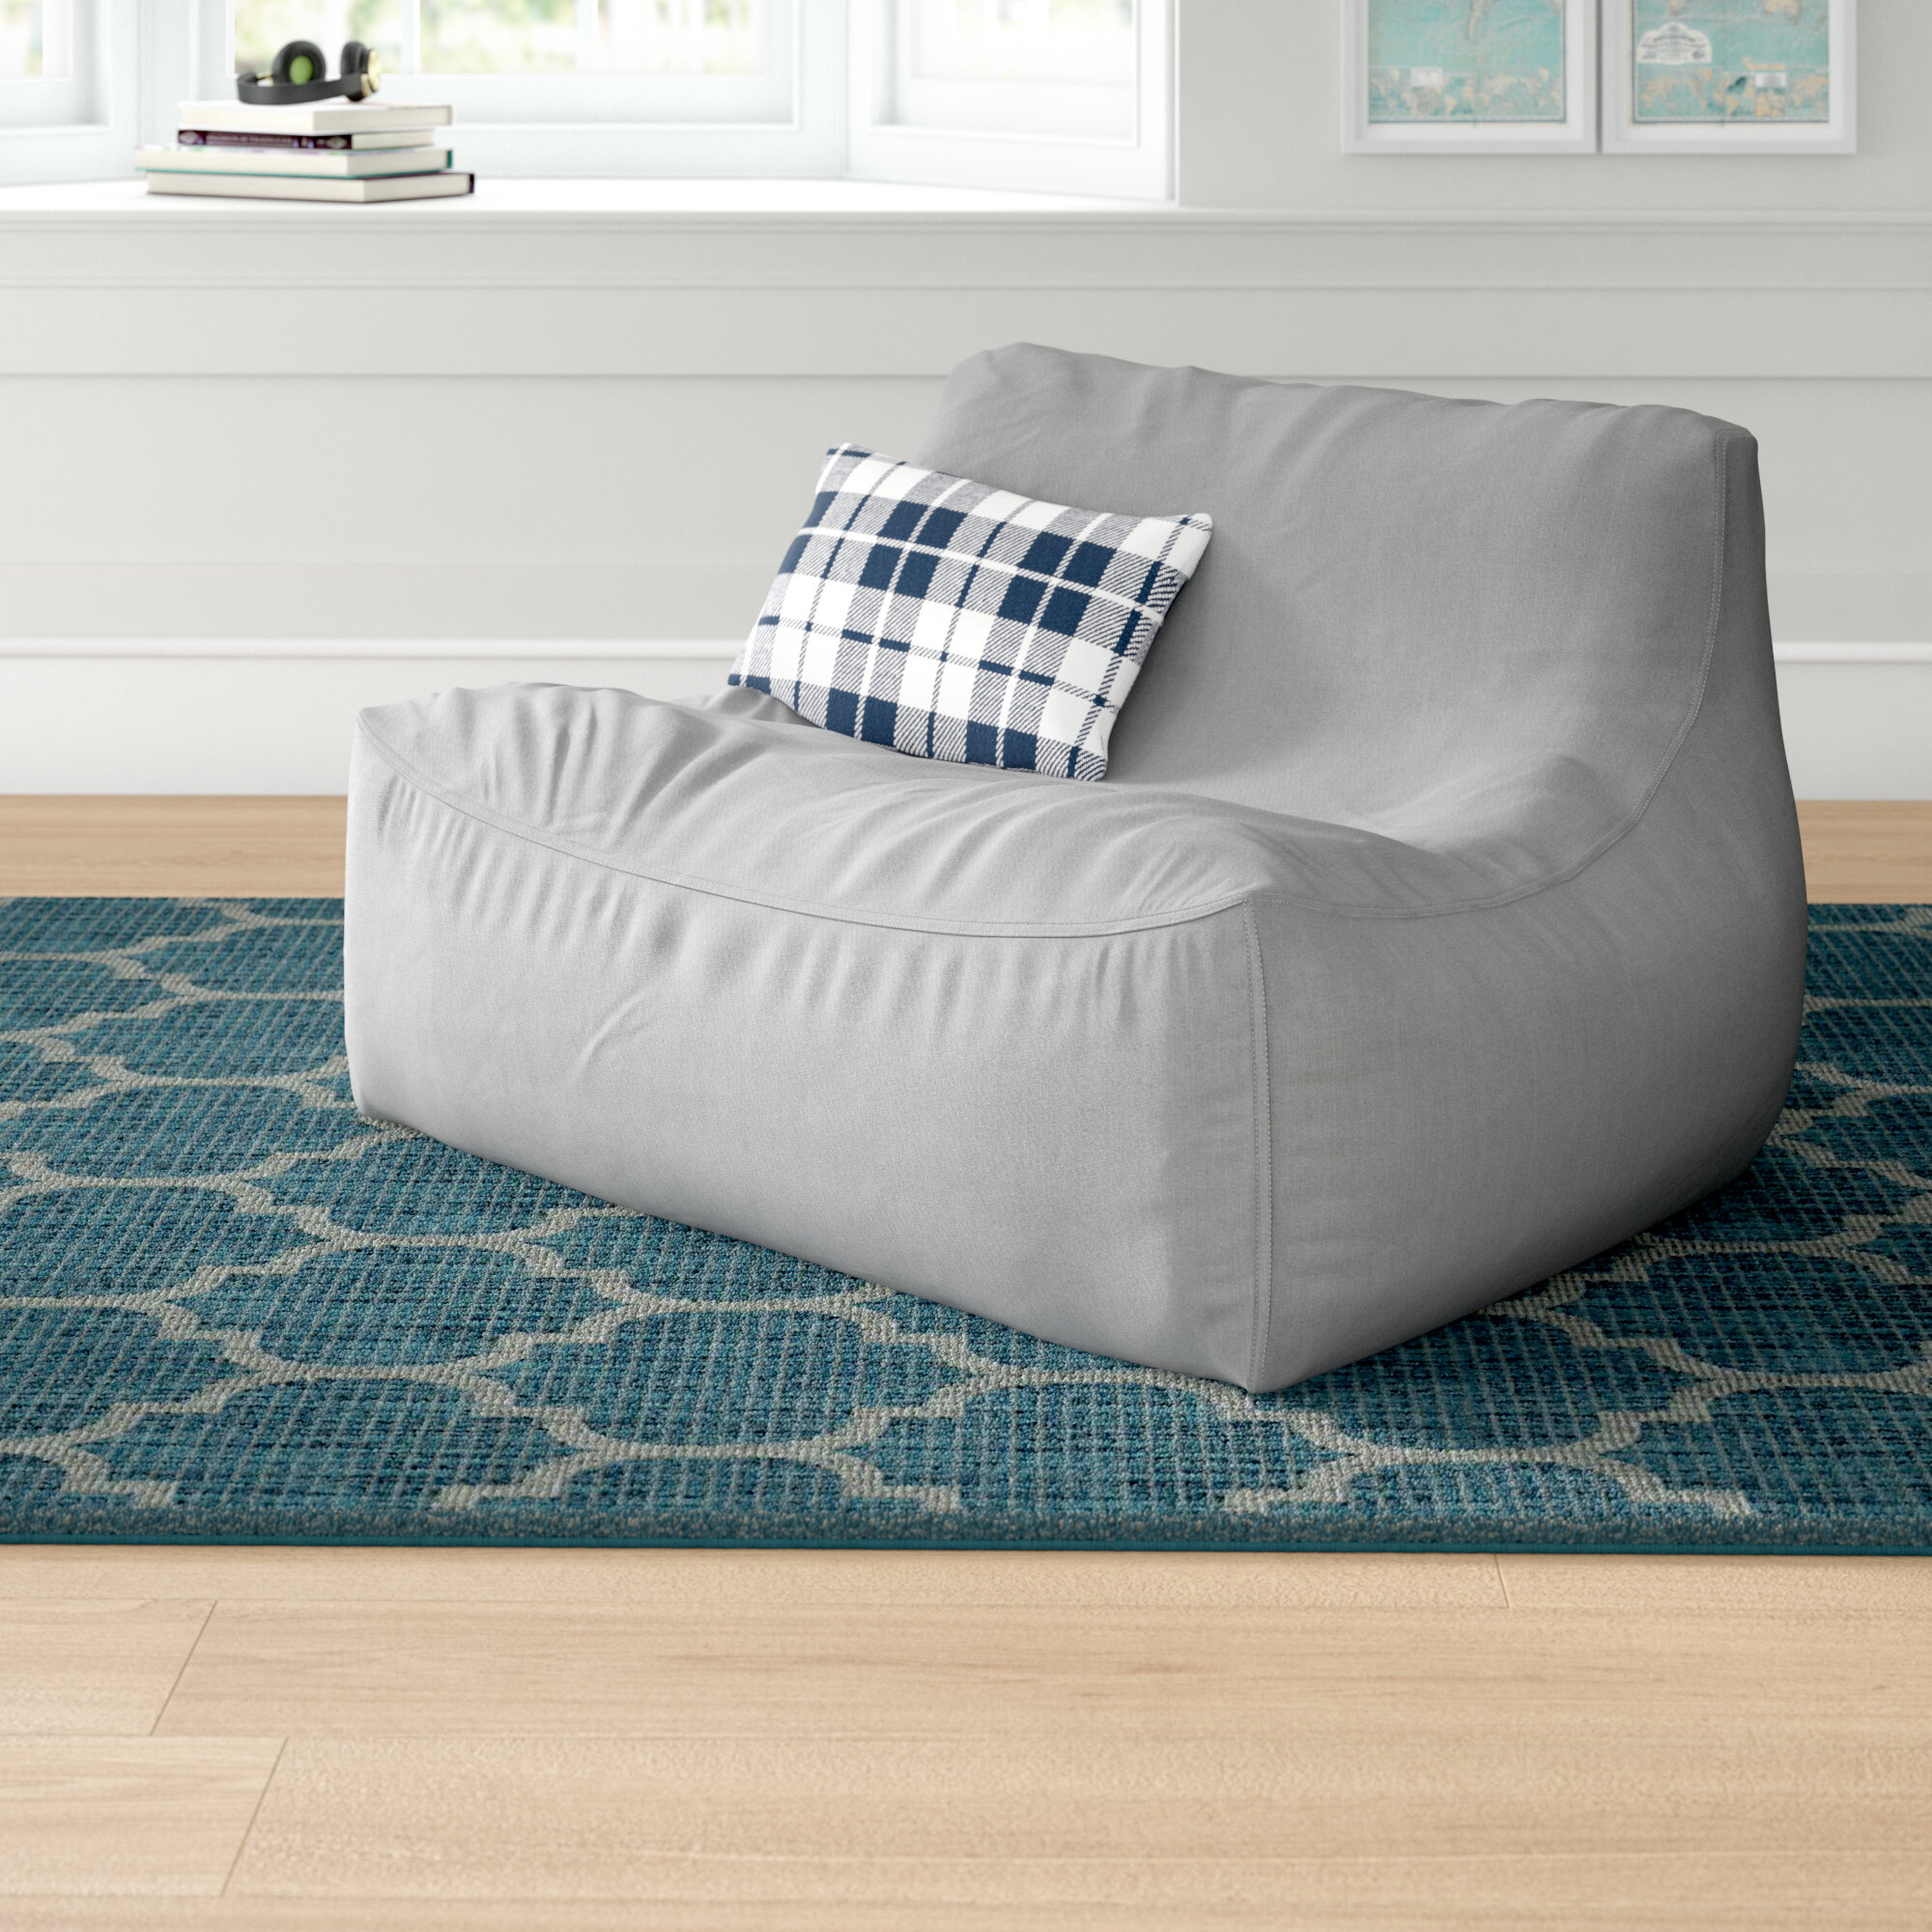 Excellent Grovelane Teen Extra Large Bean Bag Sofa Reviews Wayfair Inzonedesignstudio Interior Chair Design Inzonedesignstudiocom